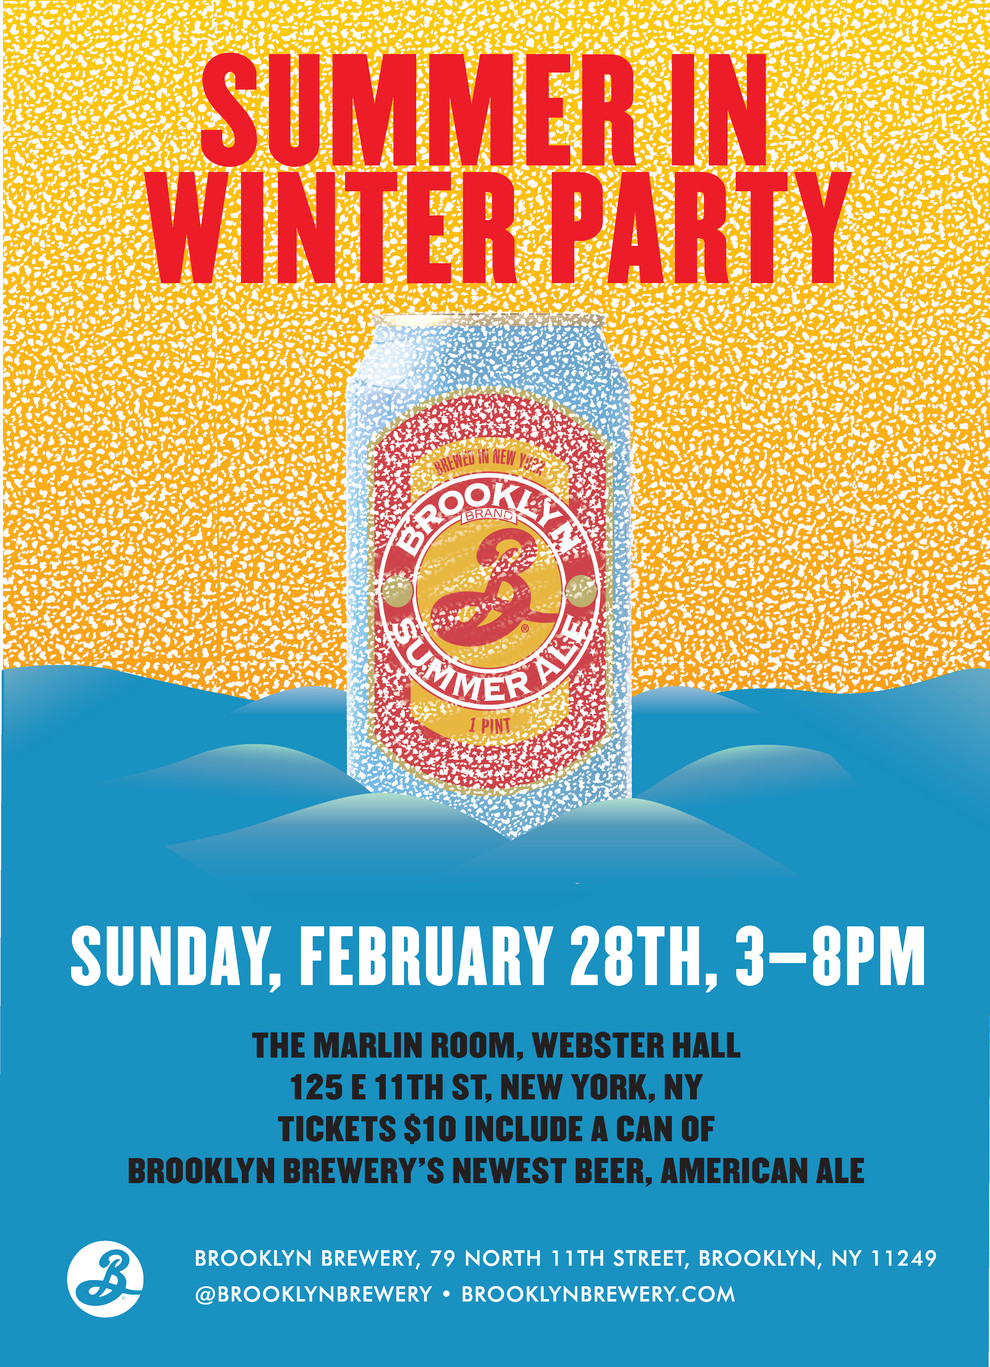 Summer In Winter Party Ideas  Summer in Winter Party NYC Events Brooklyn Brewery